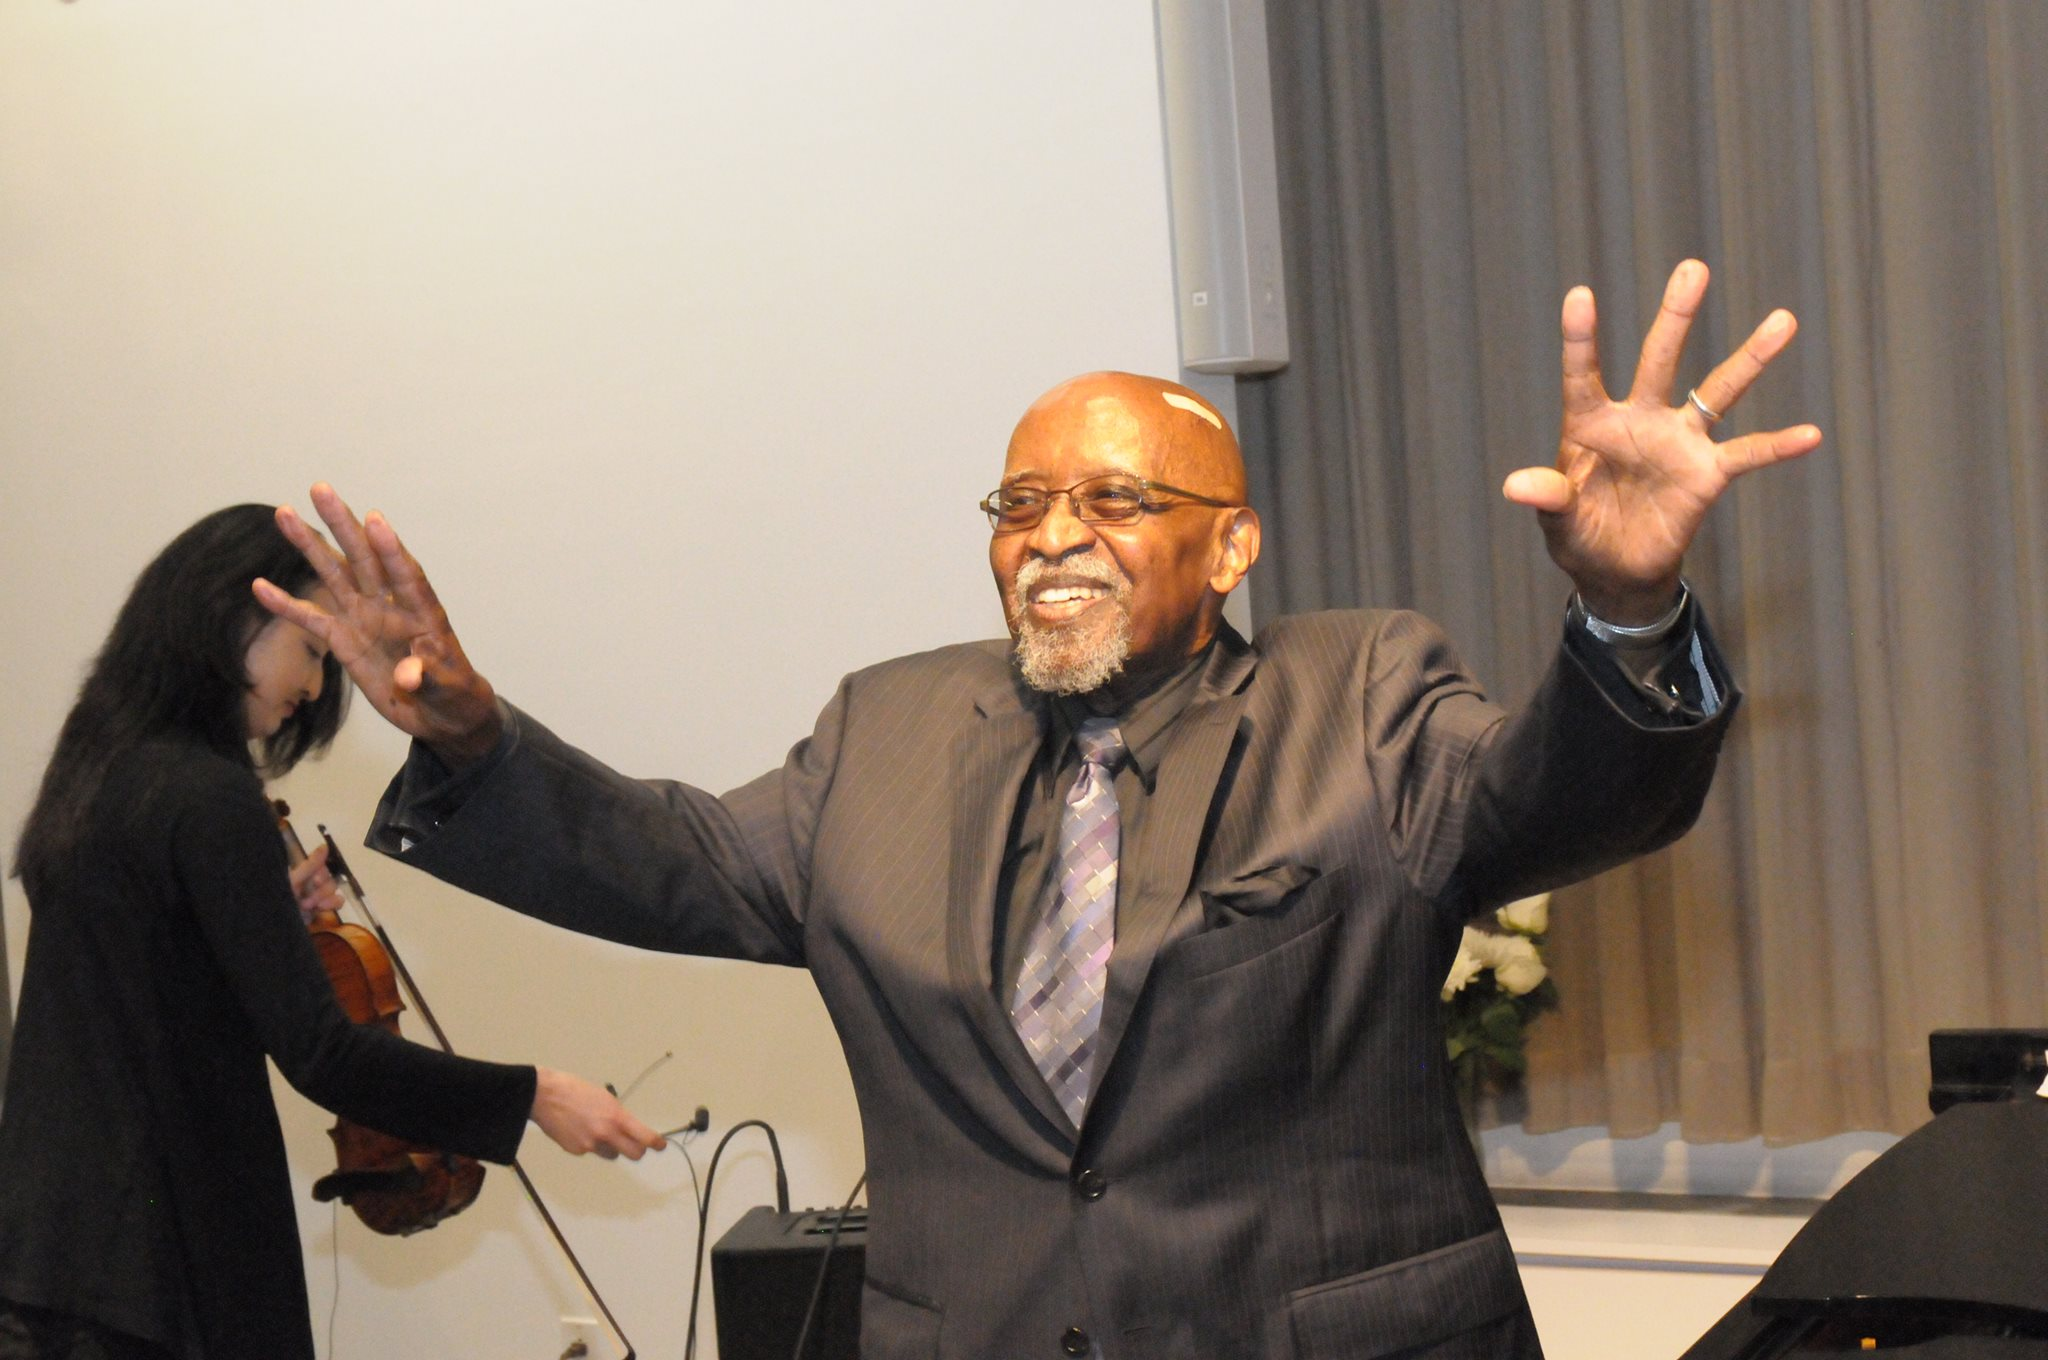 Fallece Junior Mance, leyenda del piano jazz